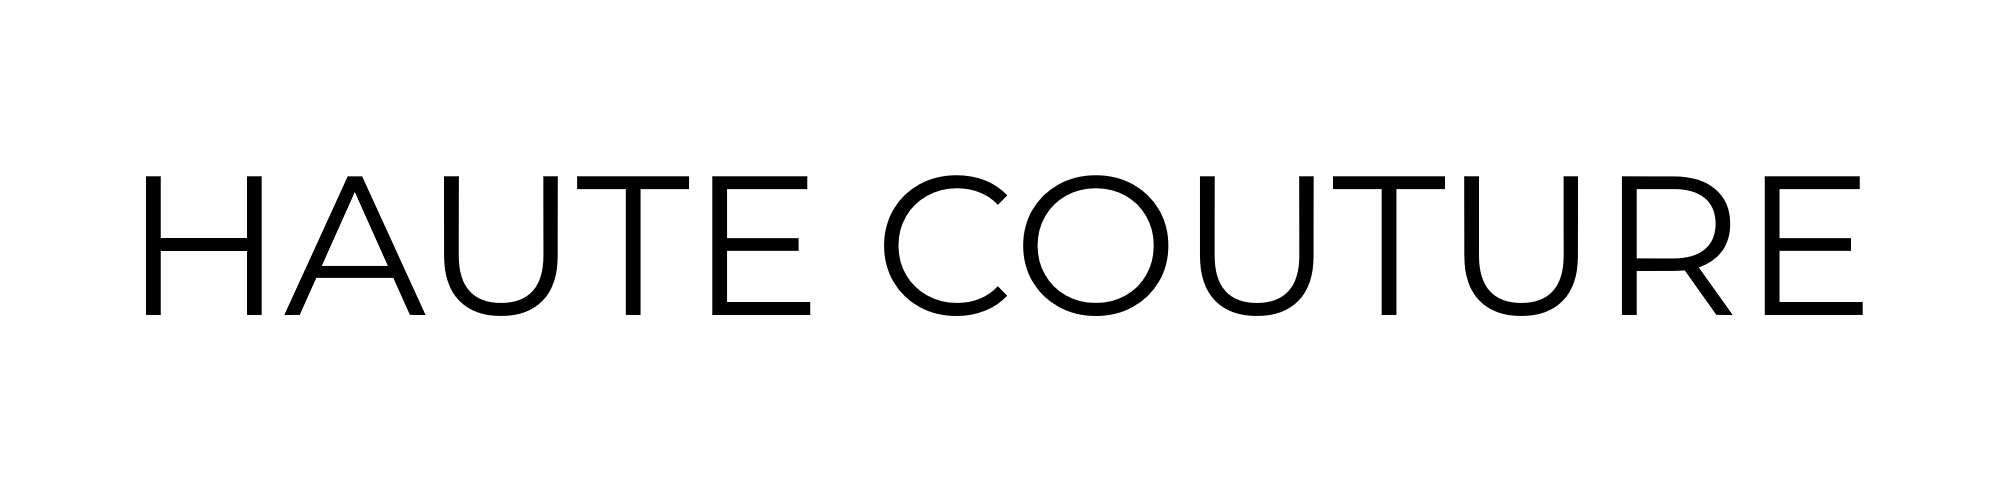 HAUTE COUTURE-logo(1).png